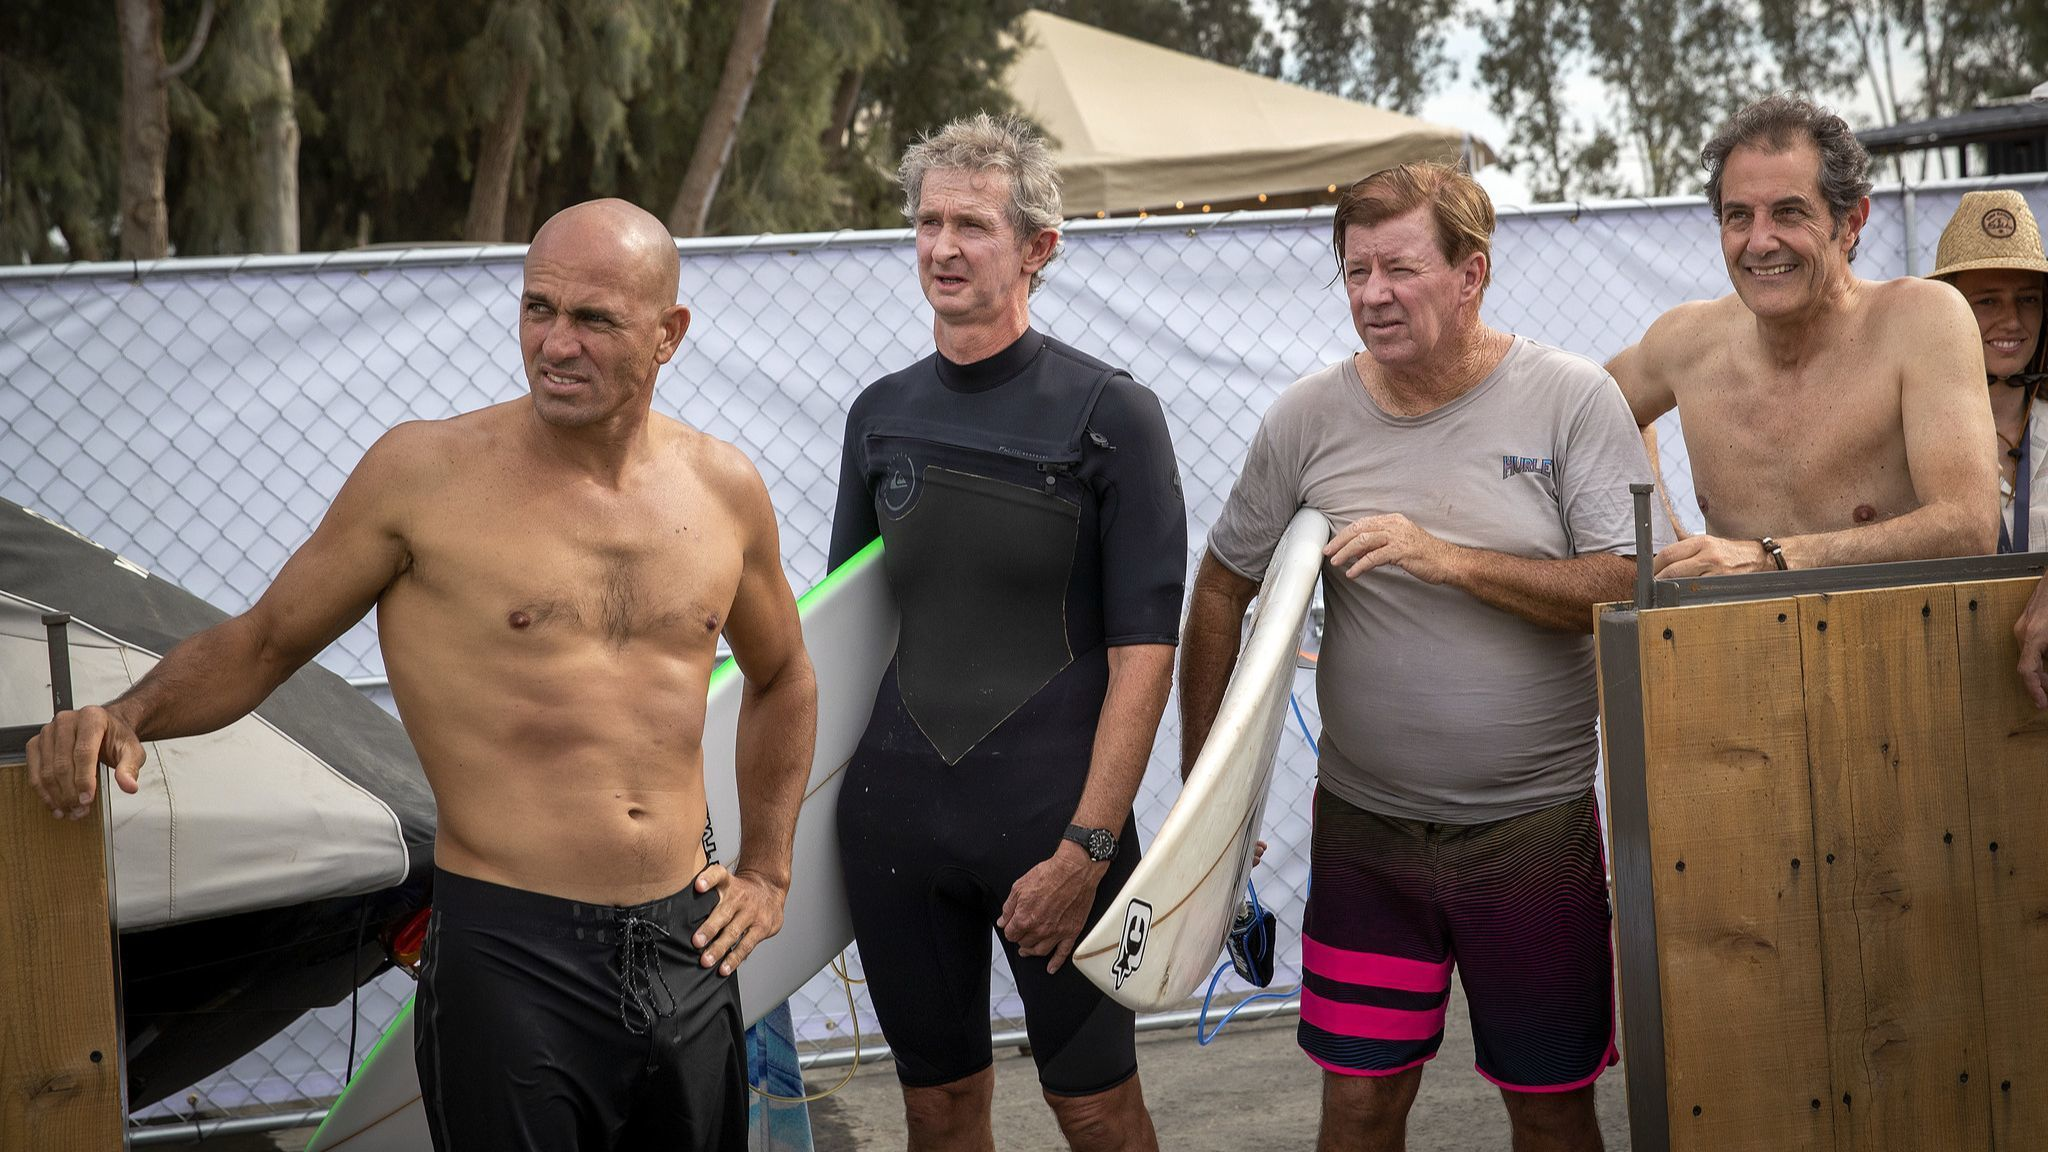 LEMOORE, CALIF. — FRIDAY, MAY 4, 2018: From left: Kelly Slater, l11-time WSL Men's Champion, Mark R